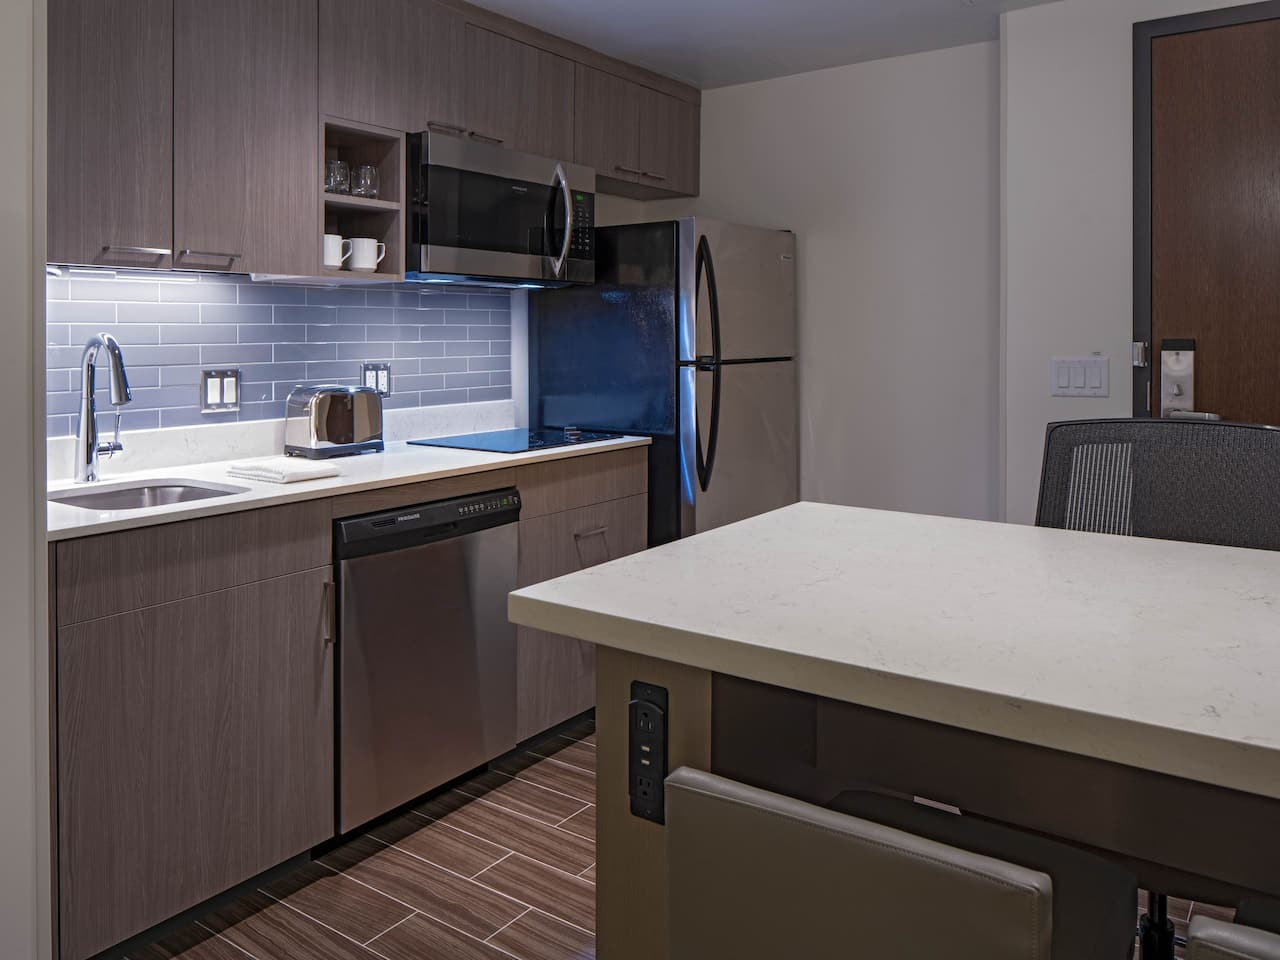 Hyatt House Studio Suite Kitchen